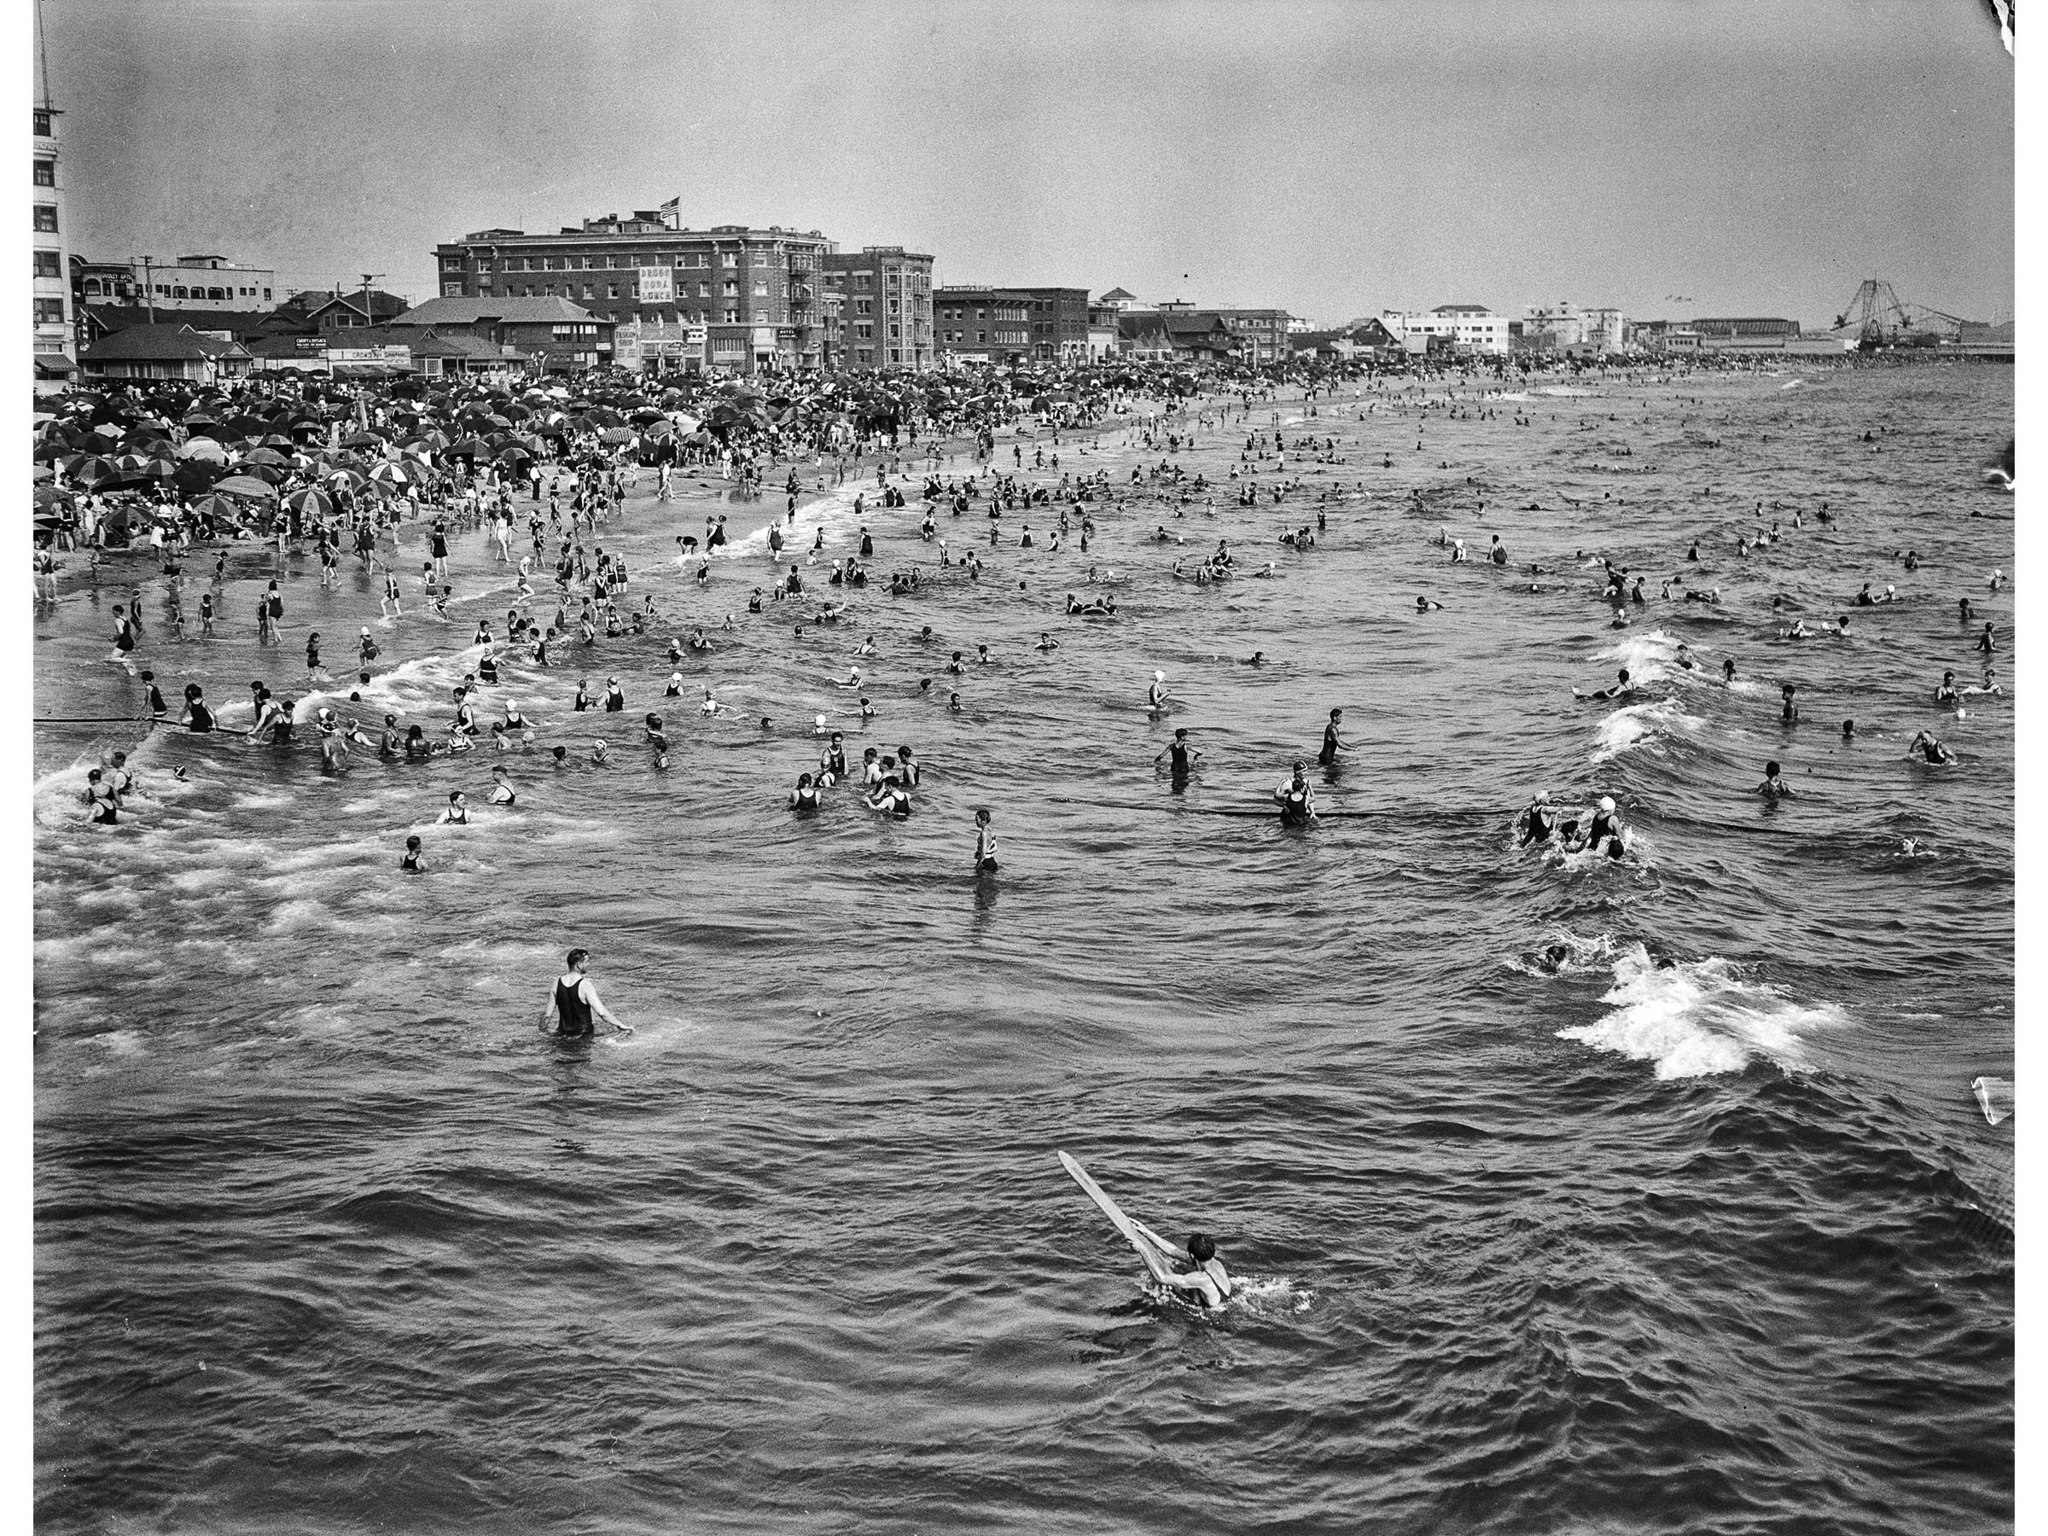 July 4, 1929: Crowd celebrating the Fouth of July on Ocean Park Beach, Santa Monica. This image is f